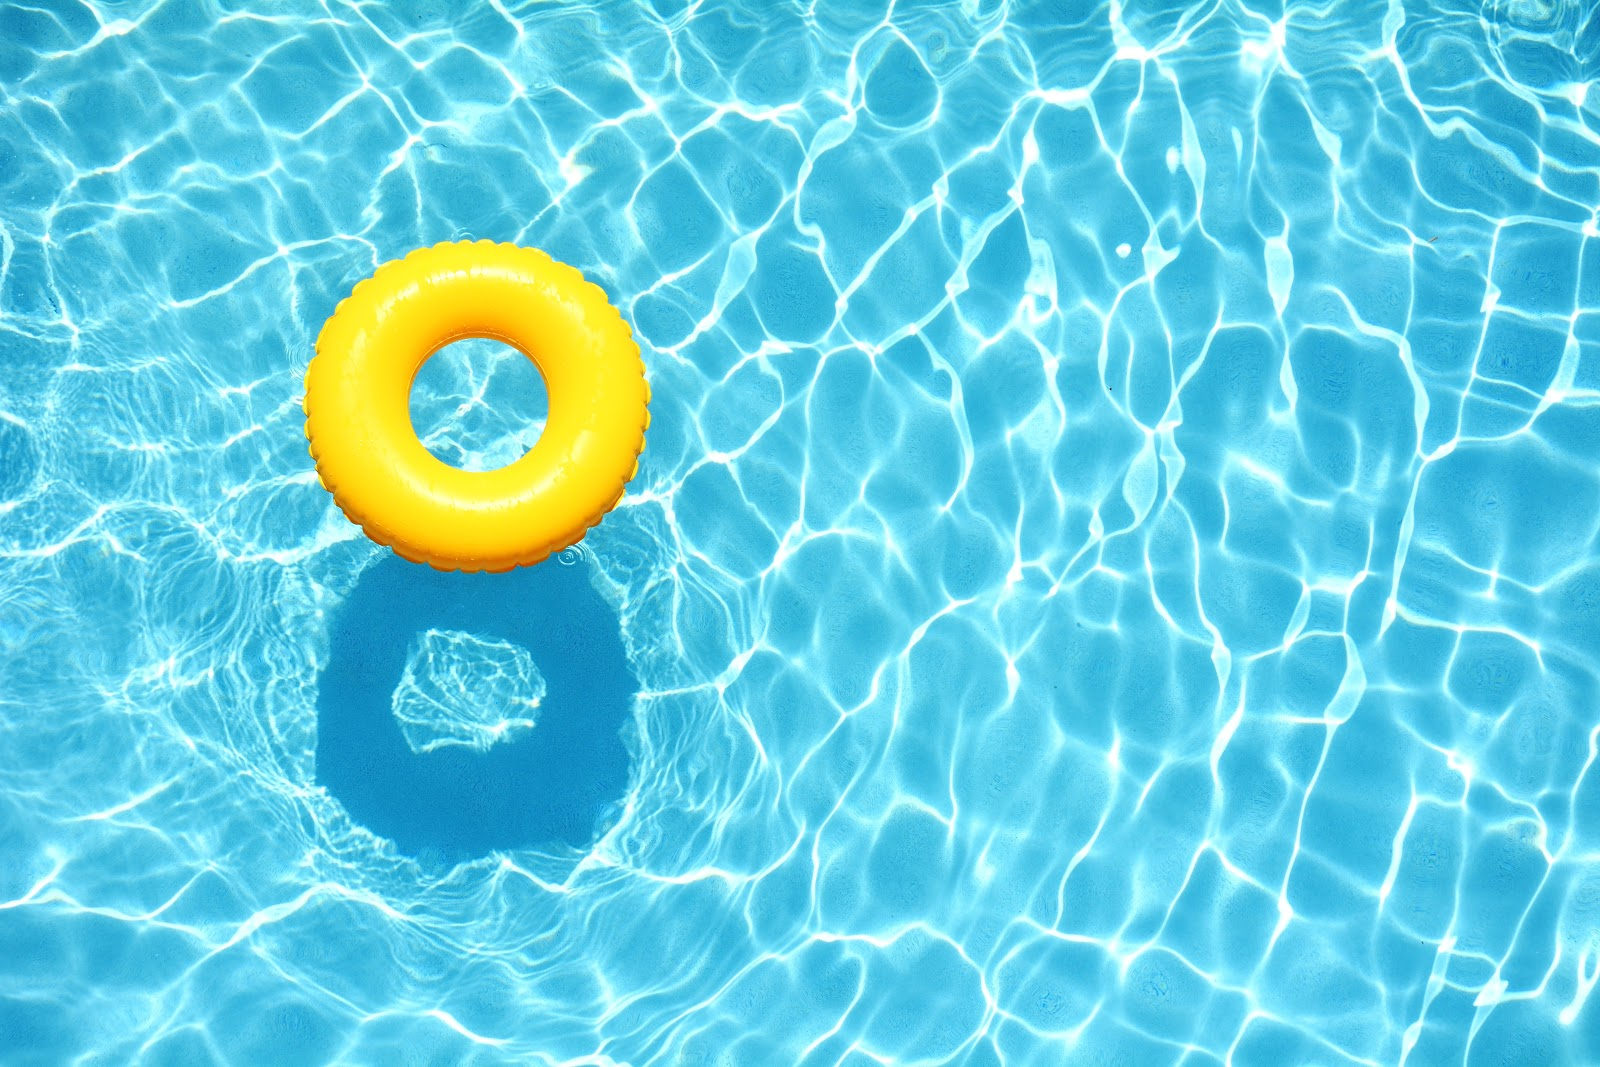 a circular yellow tube floating in clear blue water in a swimming pool